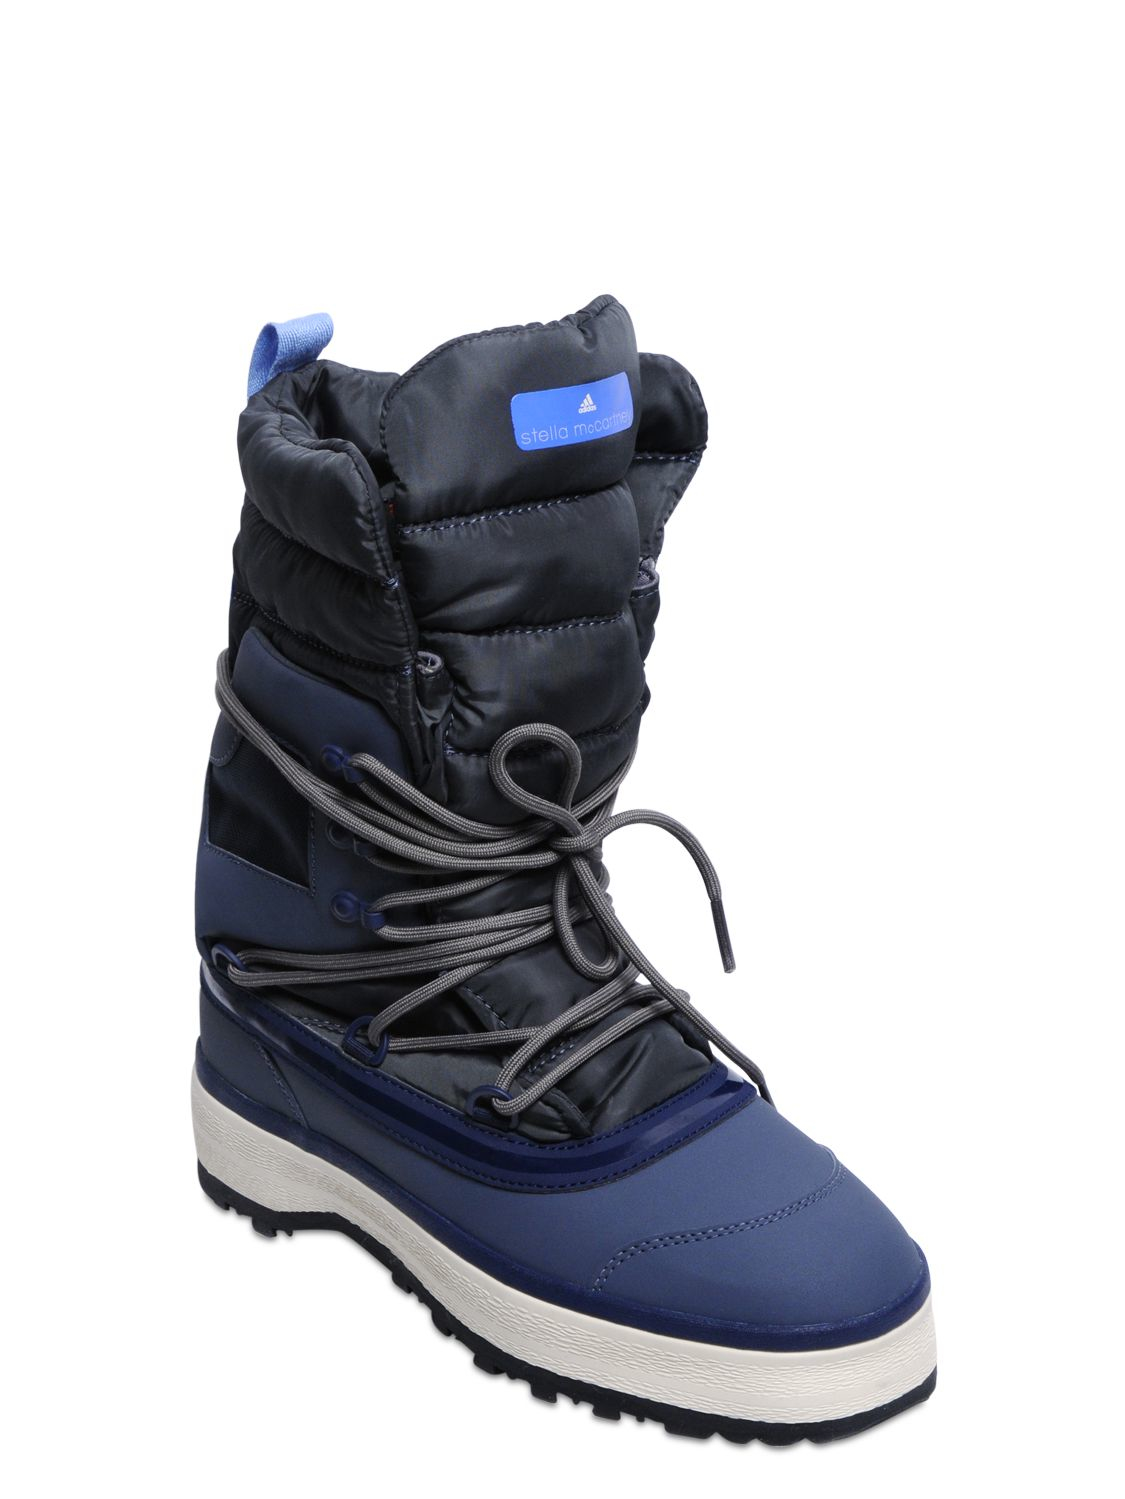 Lyst - Adidas by stella mccartney Winter Quilted Nylon Snow Boots ... : adidas quilted boots - Adamdwight.com